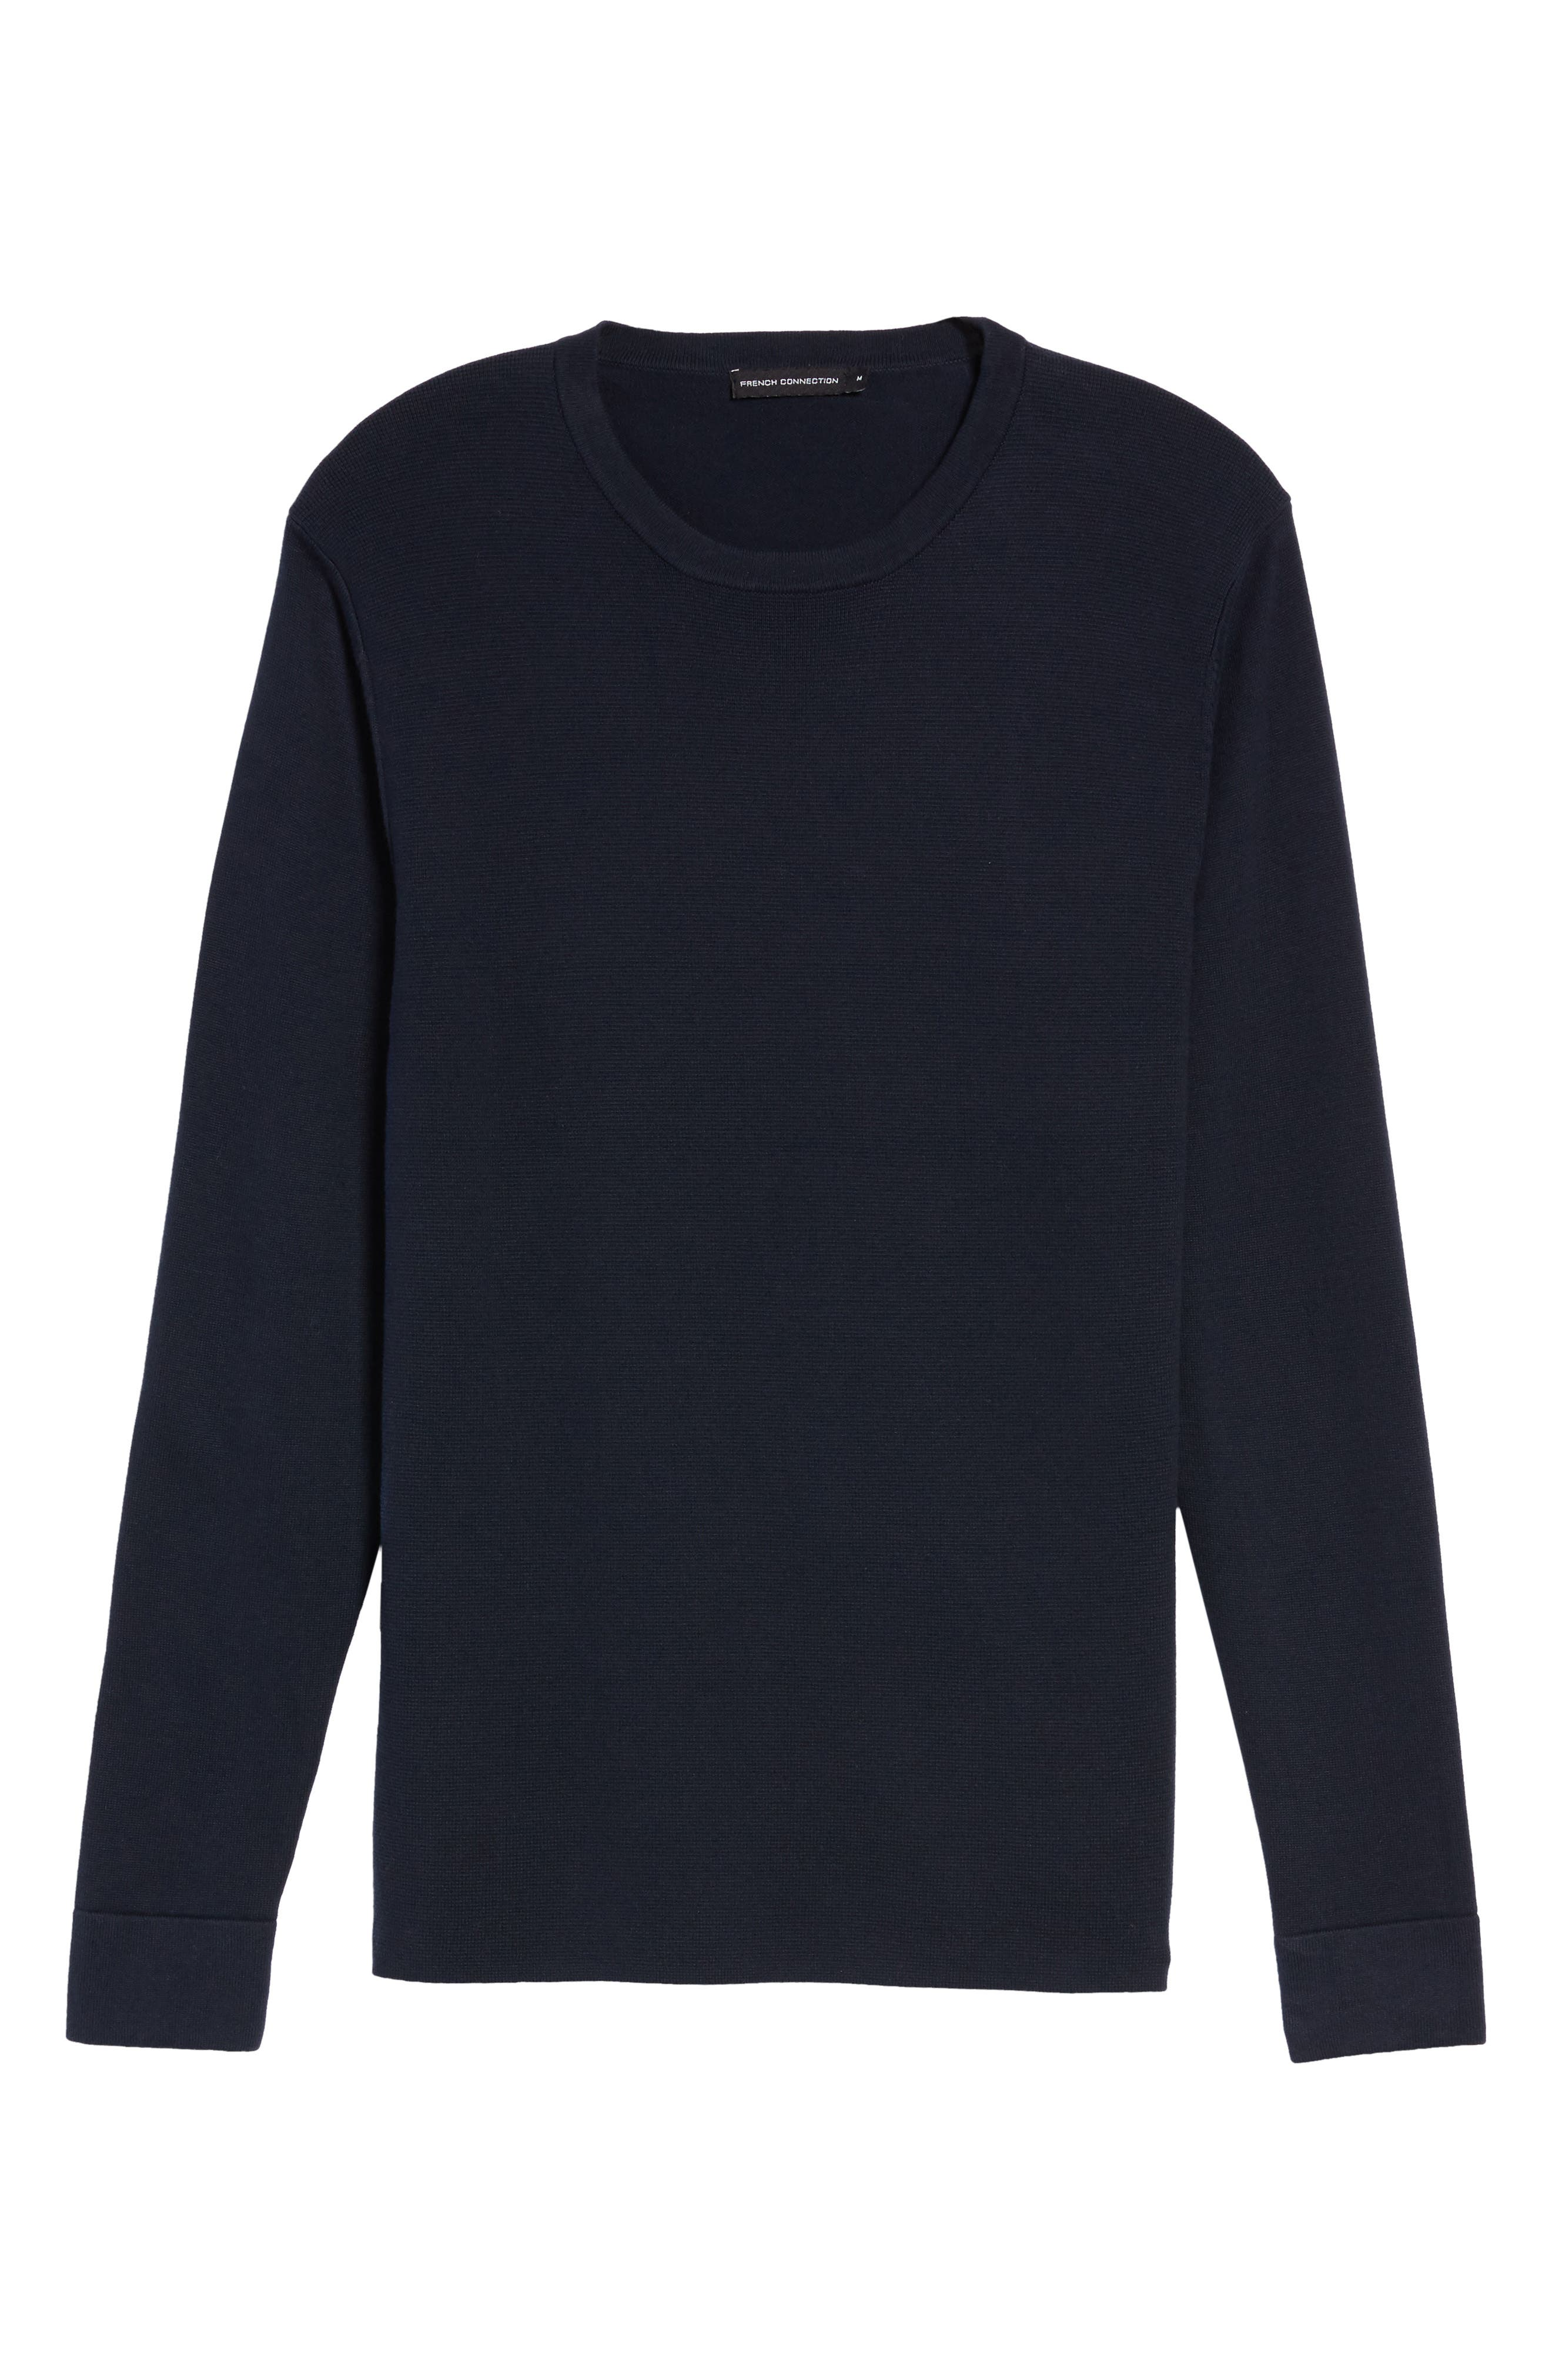 FRENCH CONNECTION,                             Milano Front Regular Fit Cotton Sweater,                             Alternate thumbnail 6, color,                             MARINE BLUE